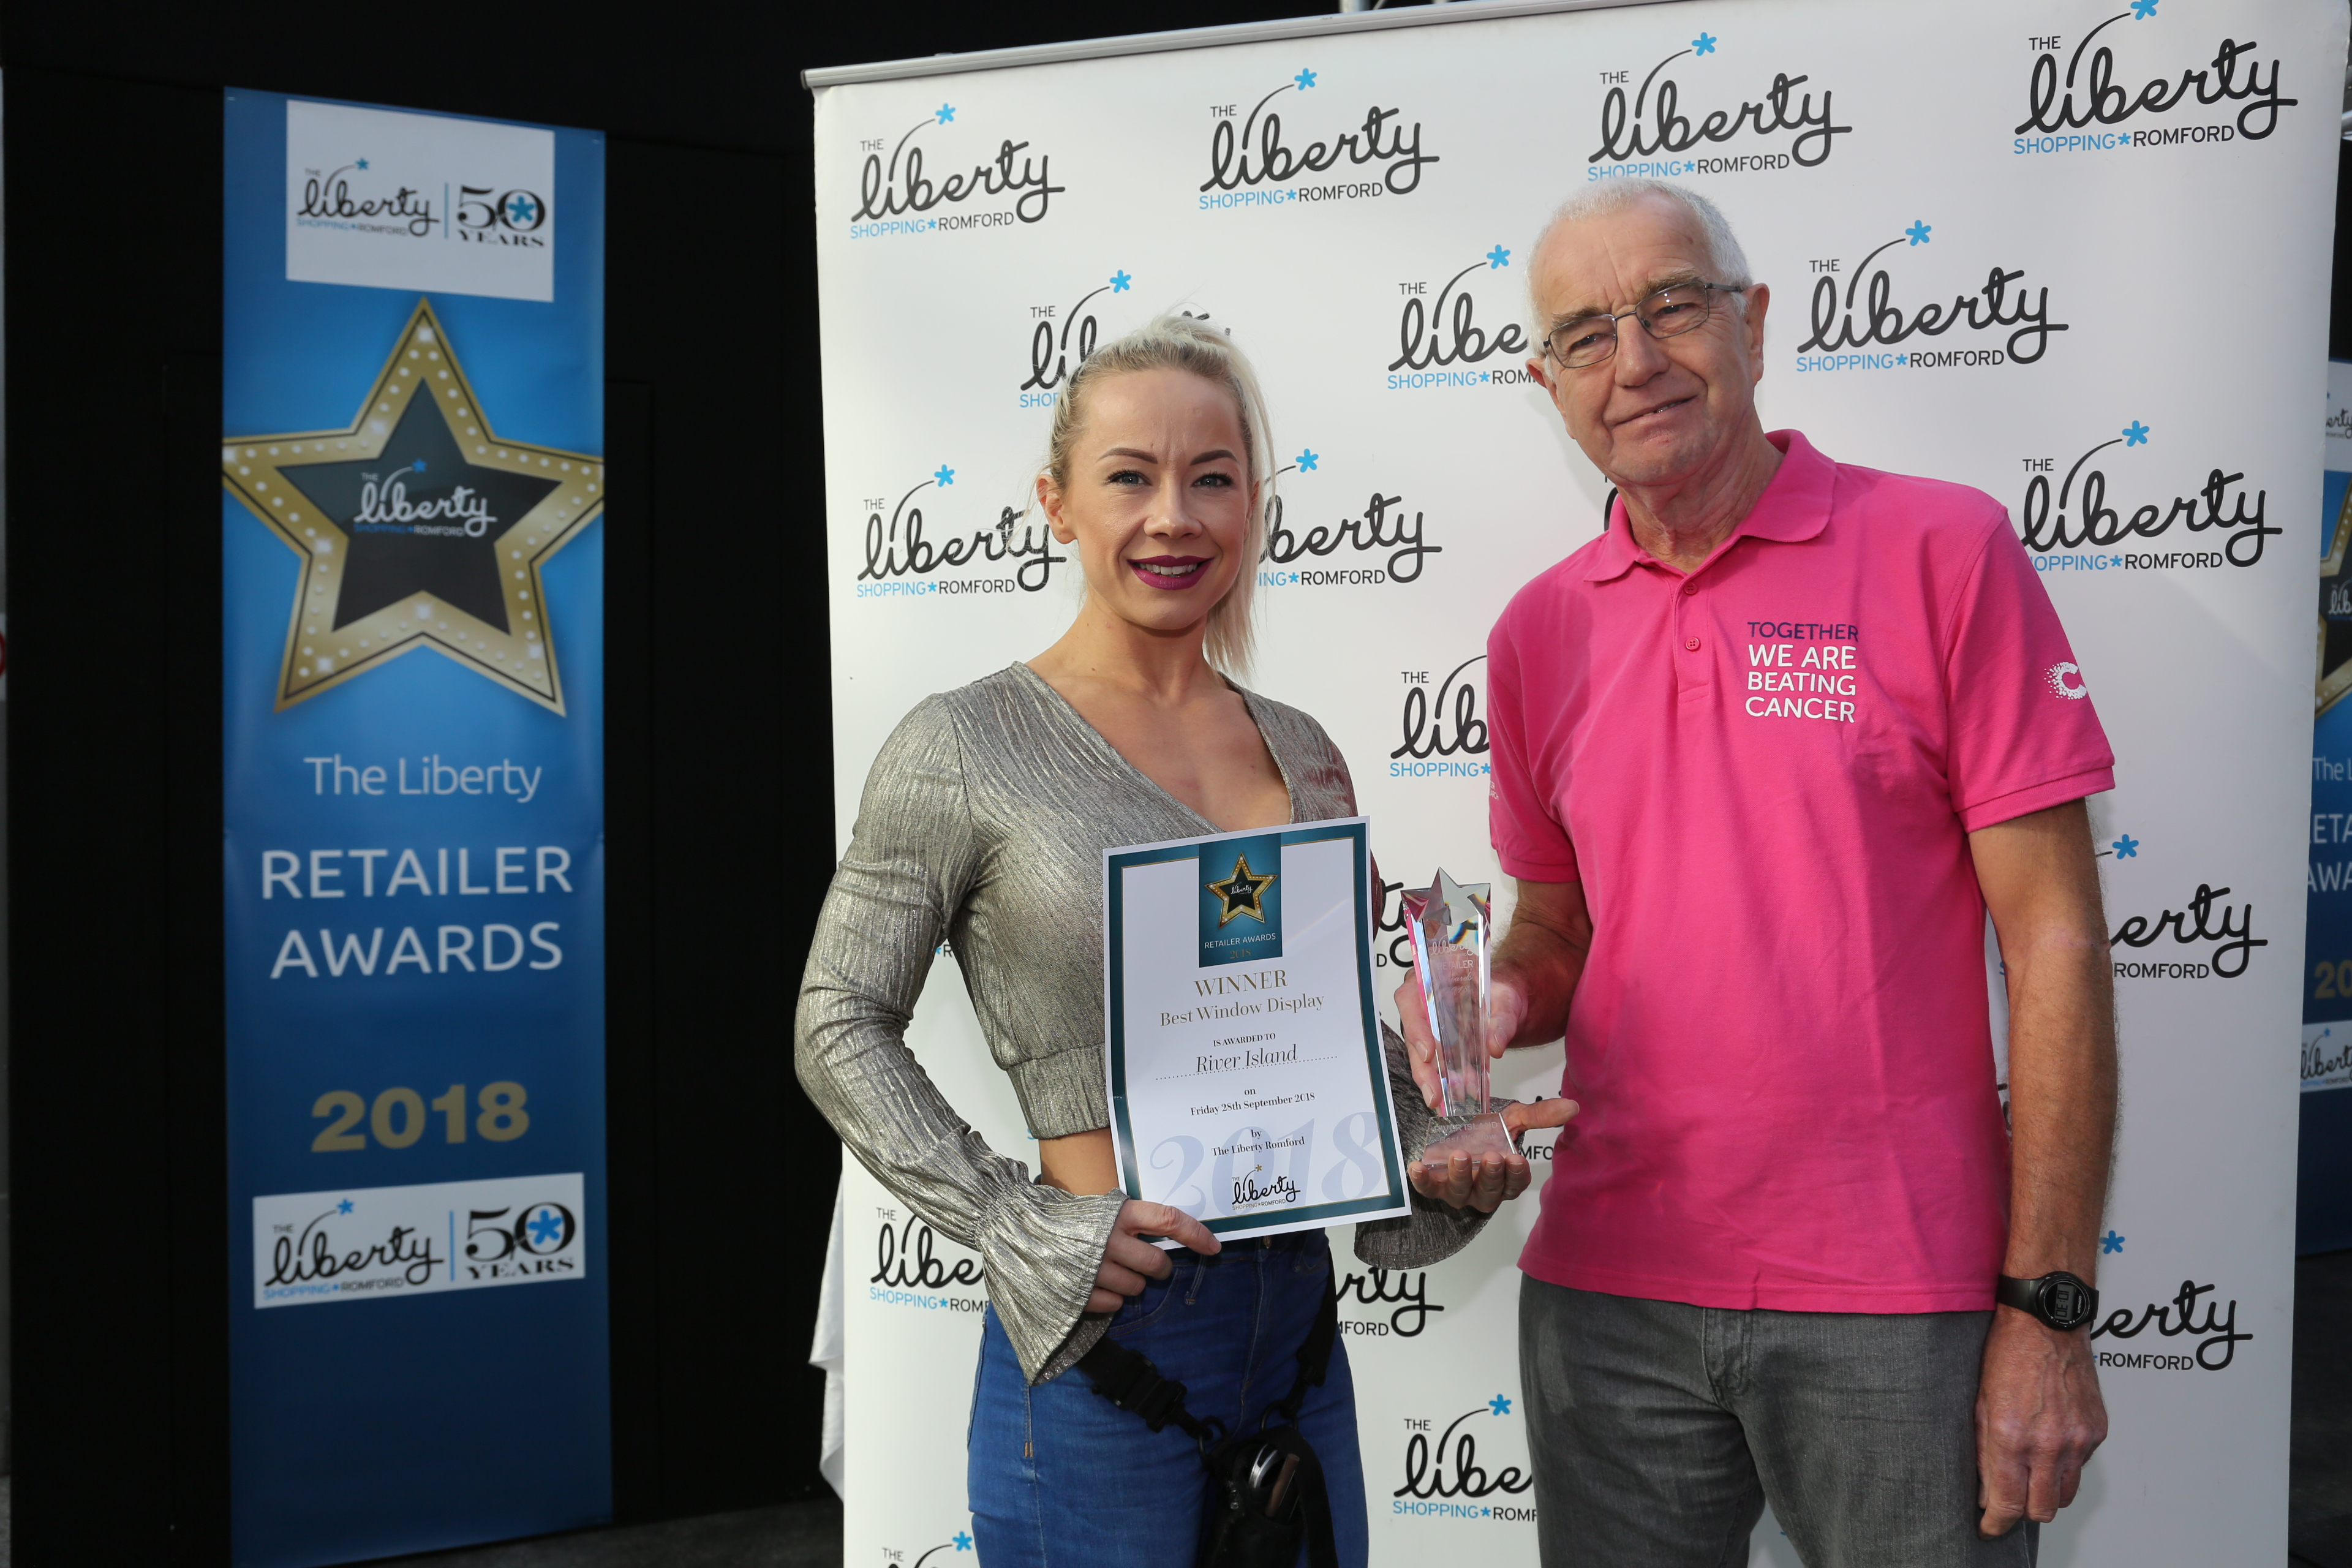 Image: S.Rowse. Best Window Display, Winner Sarah White from River Island with Peter Parkin Representative for Cancer Research UK